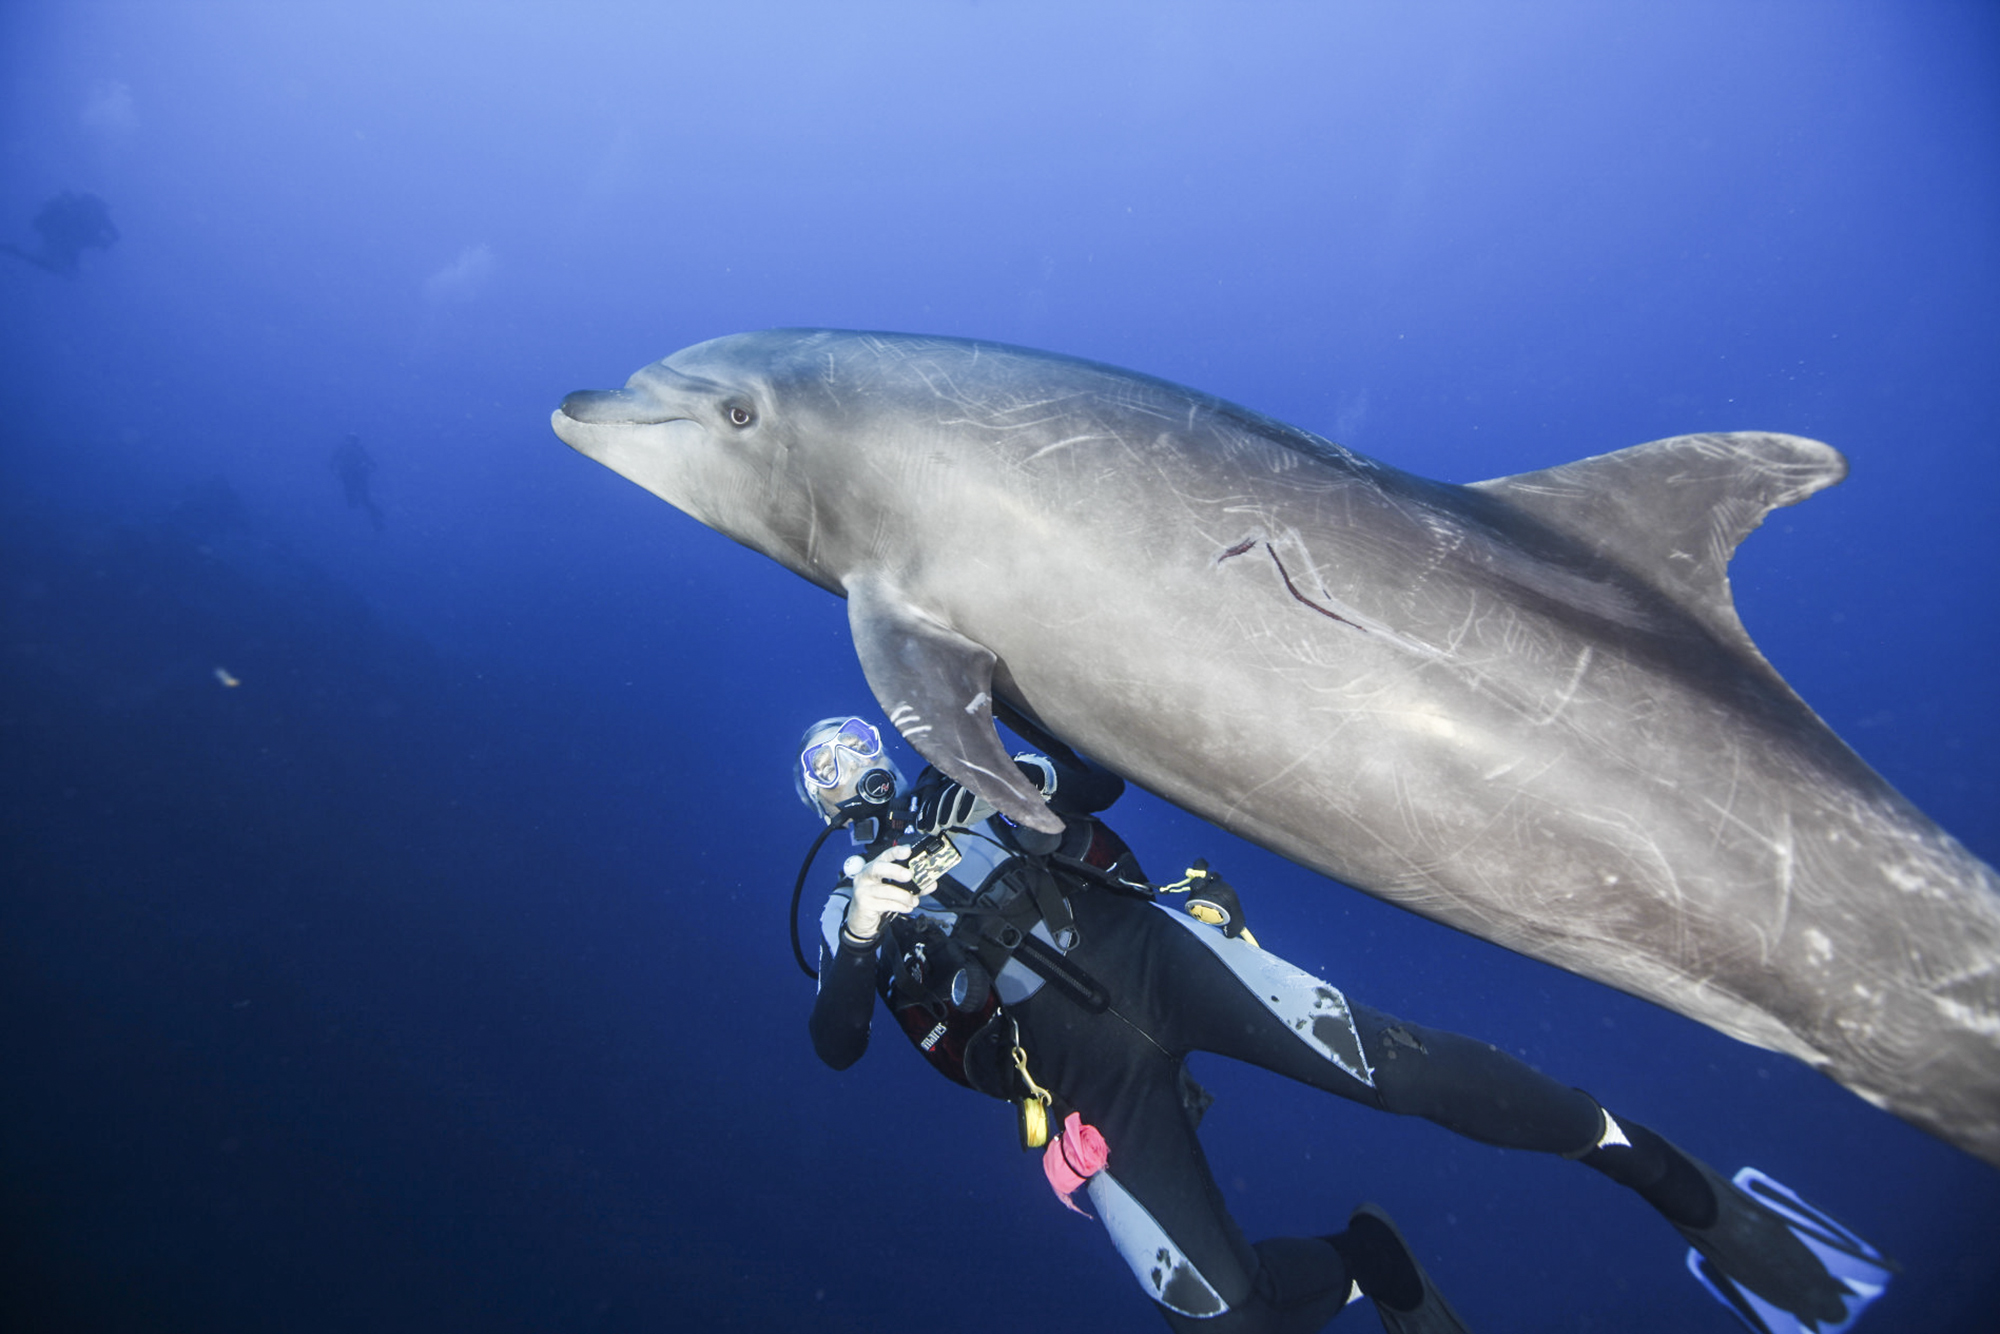 A diver swims under a dolphin at Cabo Pearce